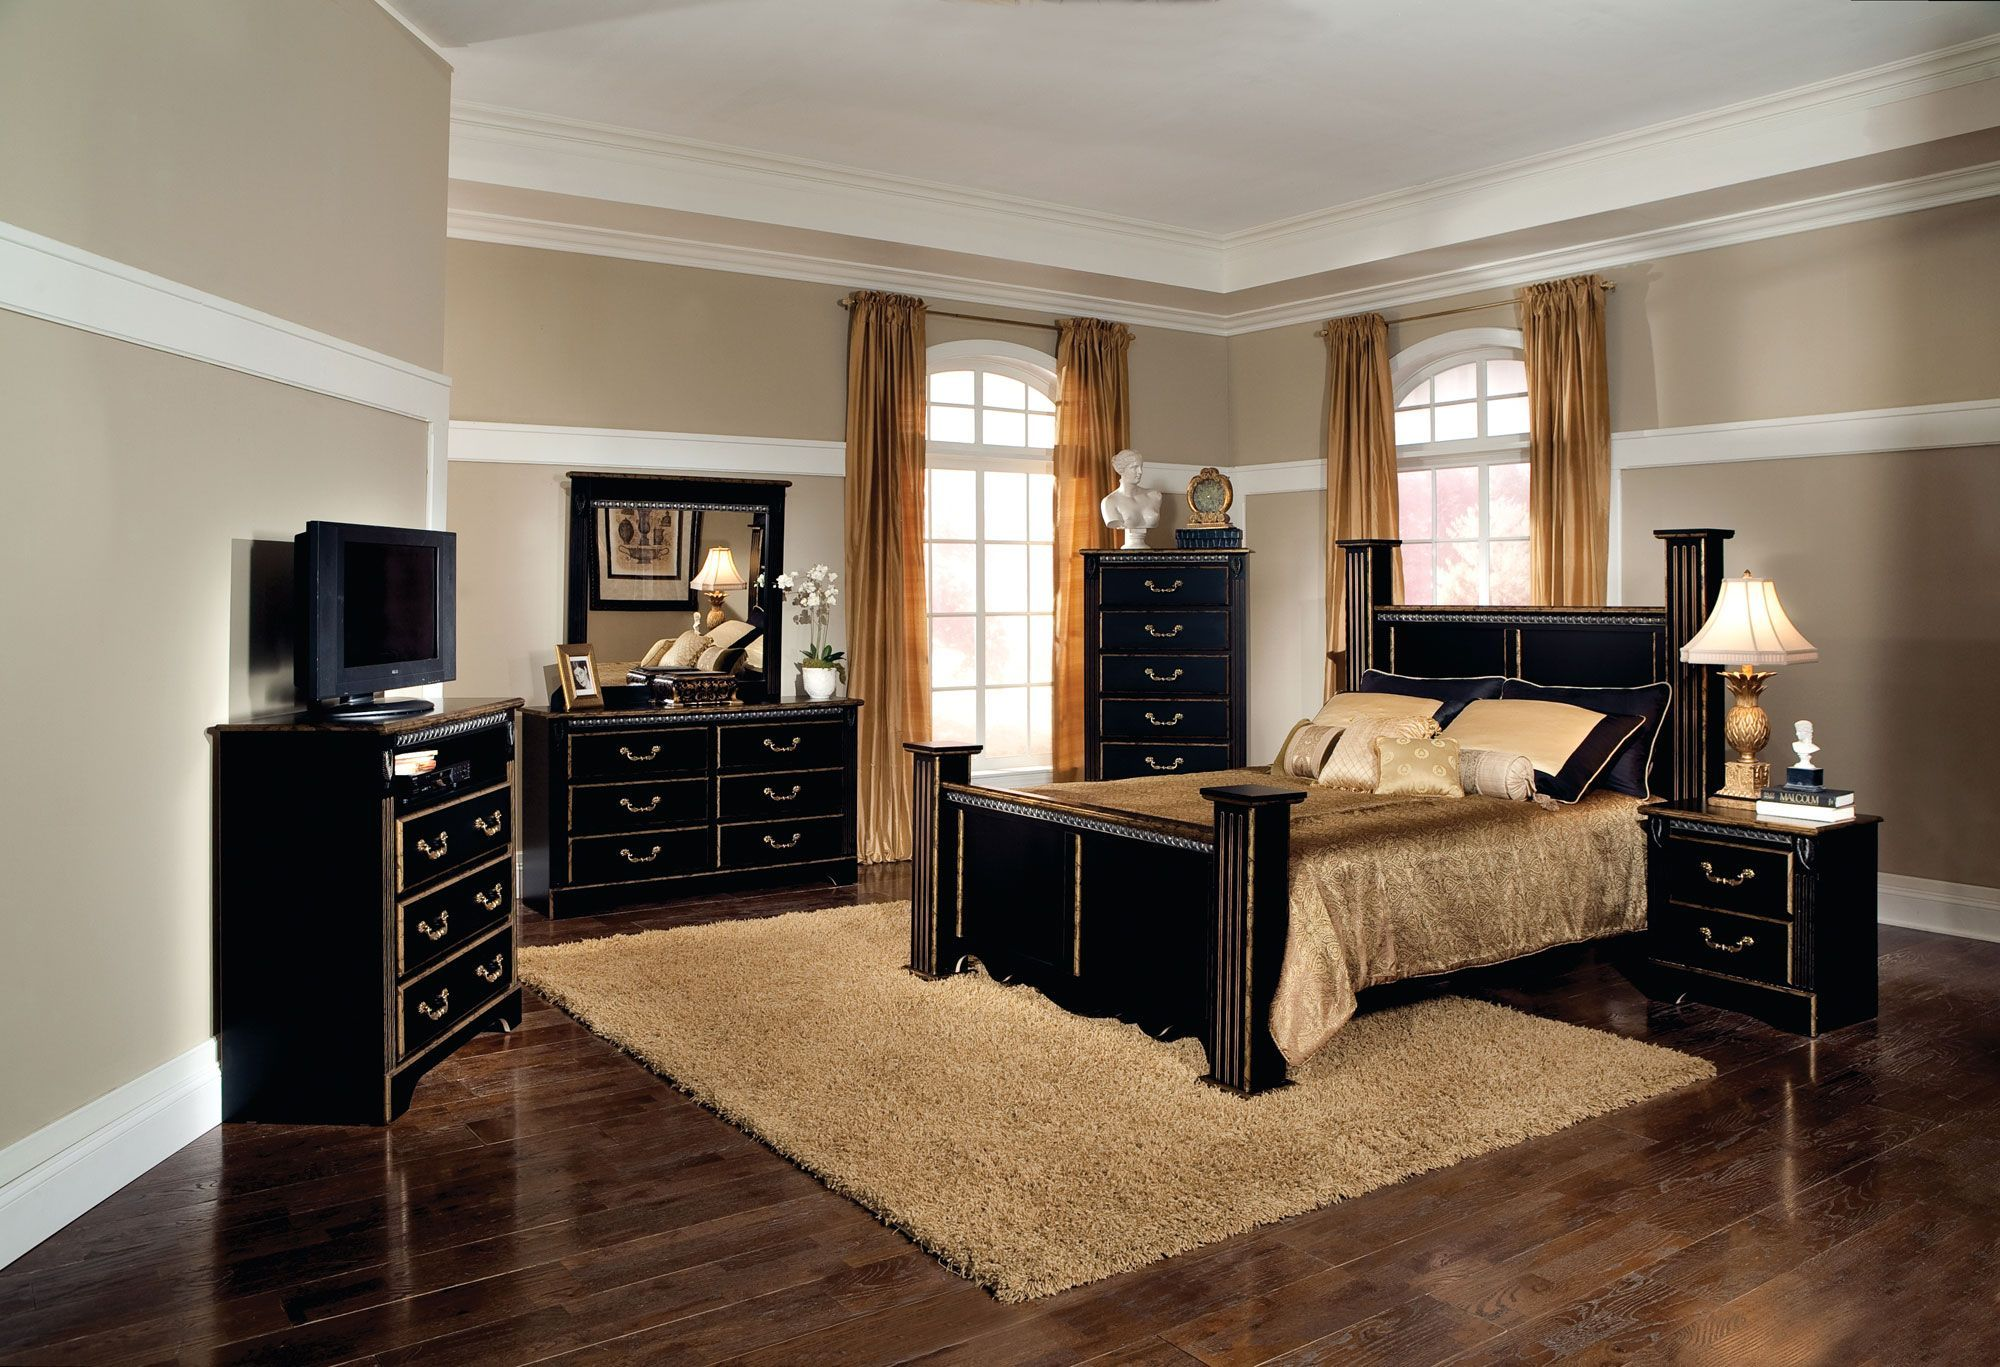 7+ Images bedroom sets for small rooms in 7  Queen sized